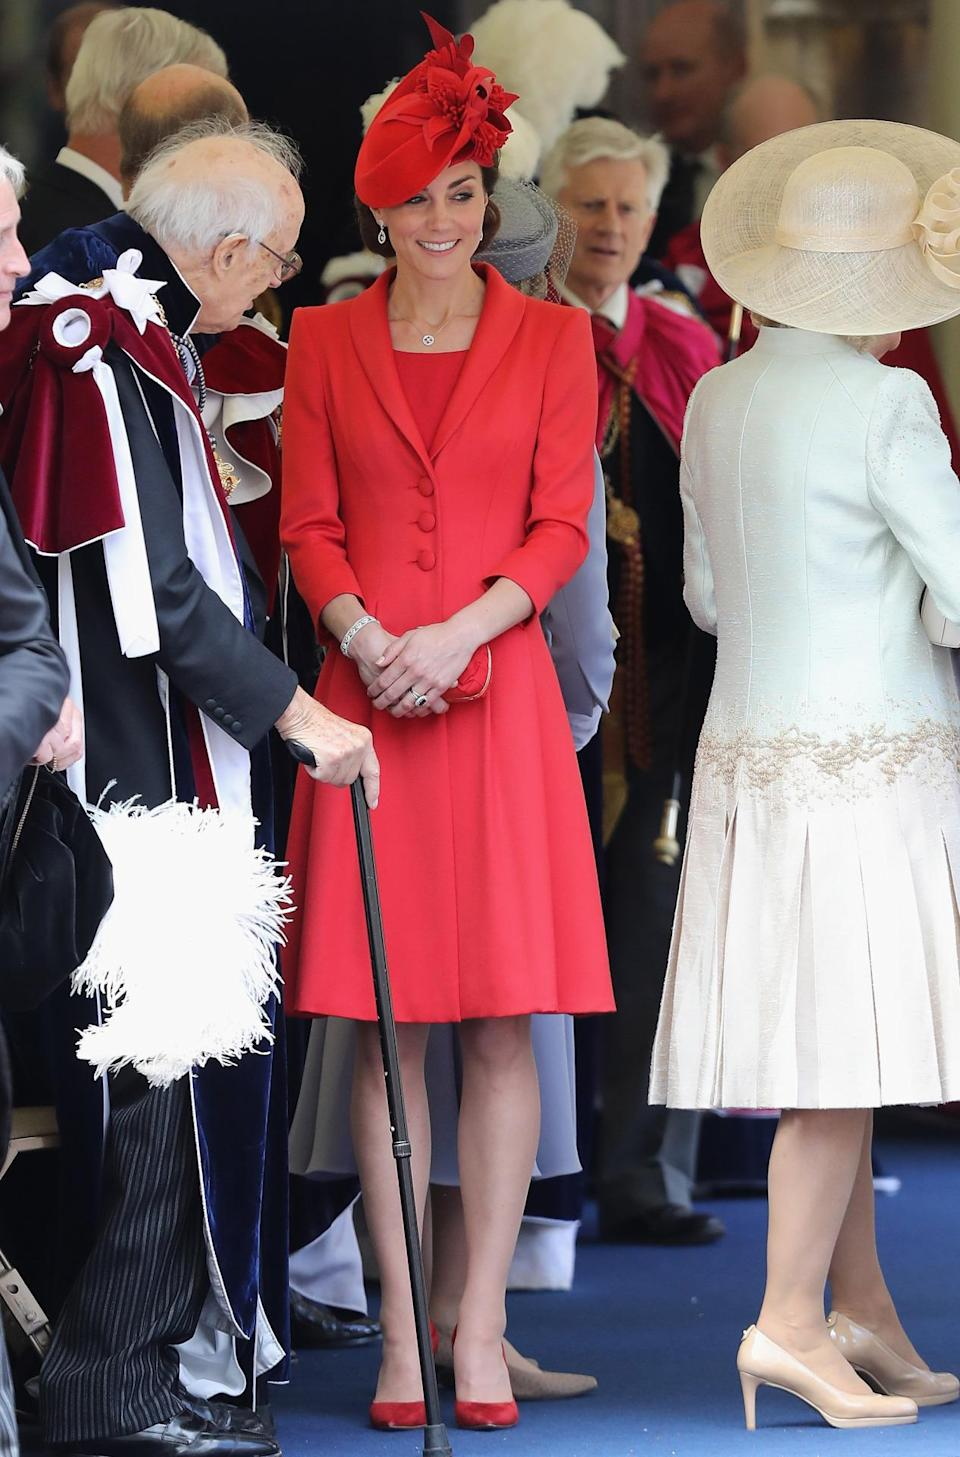 <p>Kate chose a bright red bespoke ensemble by Catherine Walker for a service at Windsor Castle. Matching red suede Gianvito Rossi pumps and an Alexander McQueen clutch proved to be the perfect accessories.</p><p><i>[Photo: PA]</i></p>